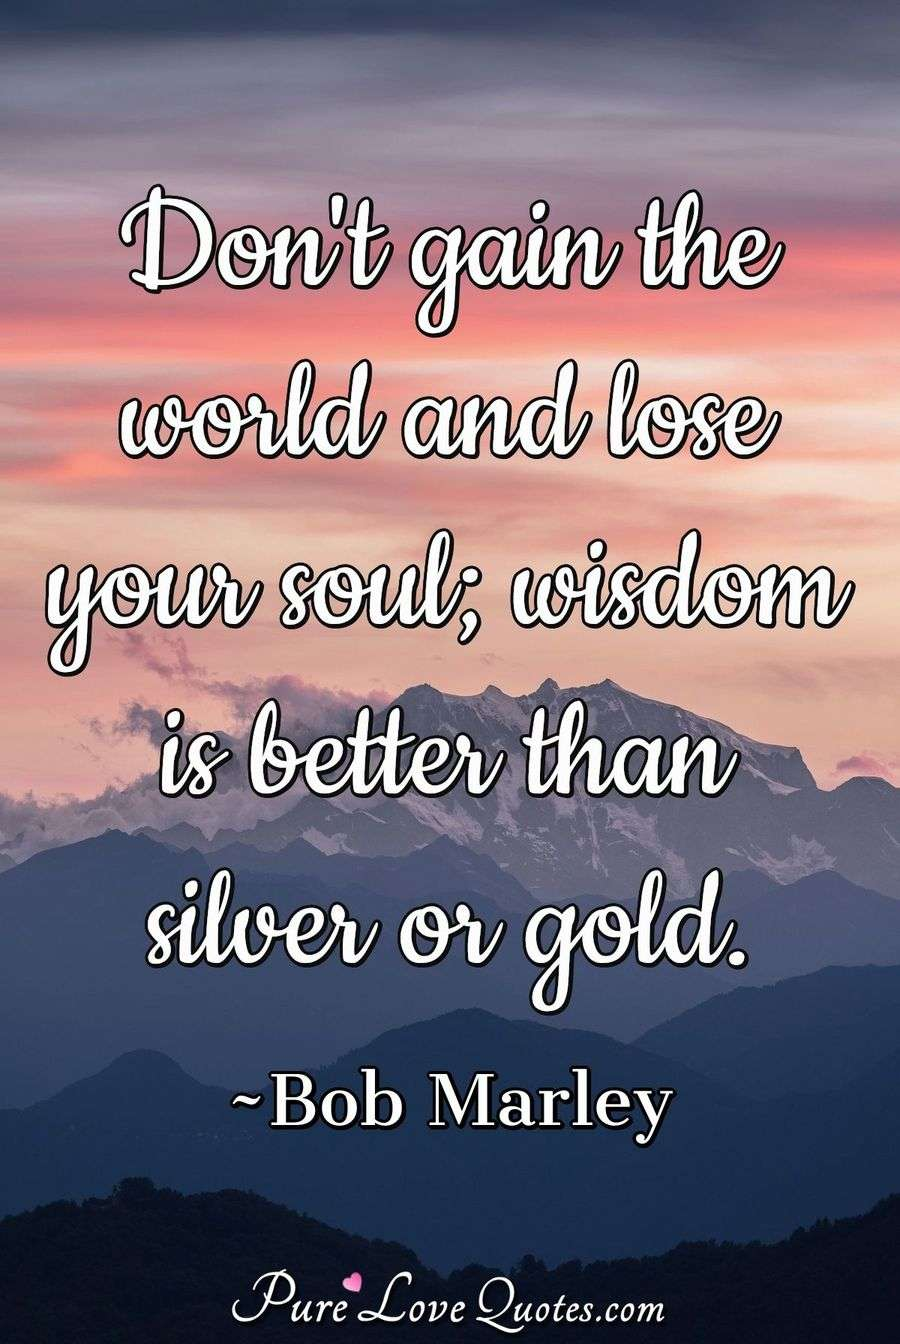 Don't gain the world and lose your soul wisdom is better than silver or gold. - Bob Marley